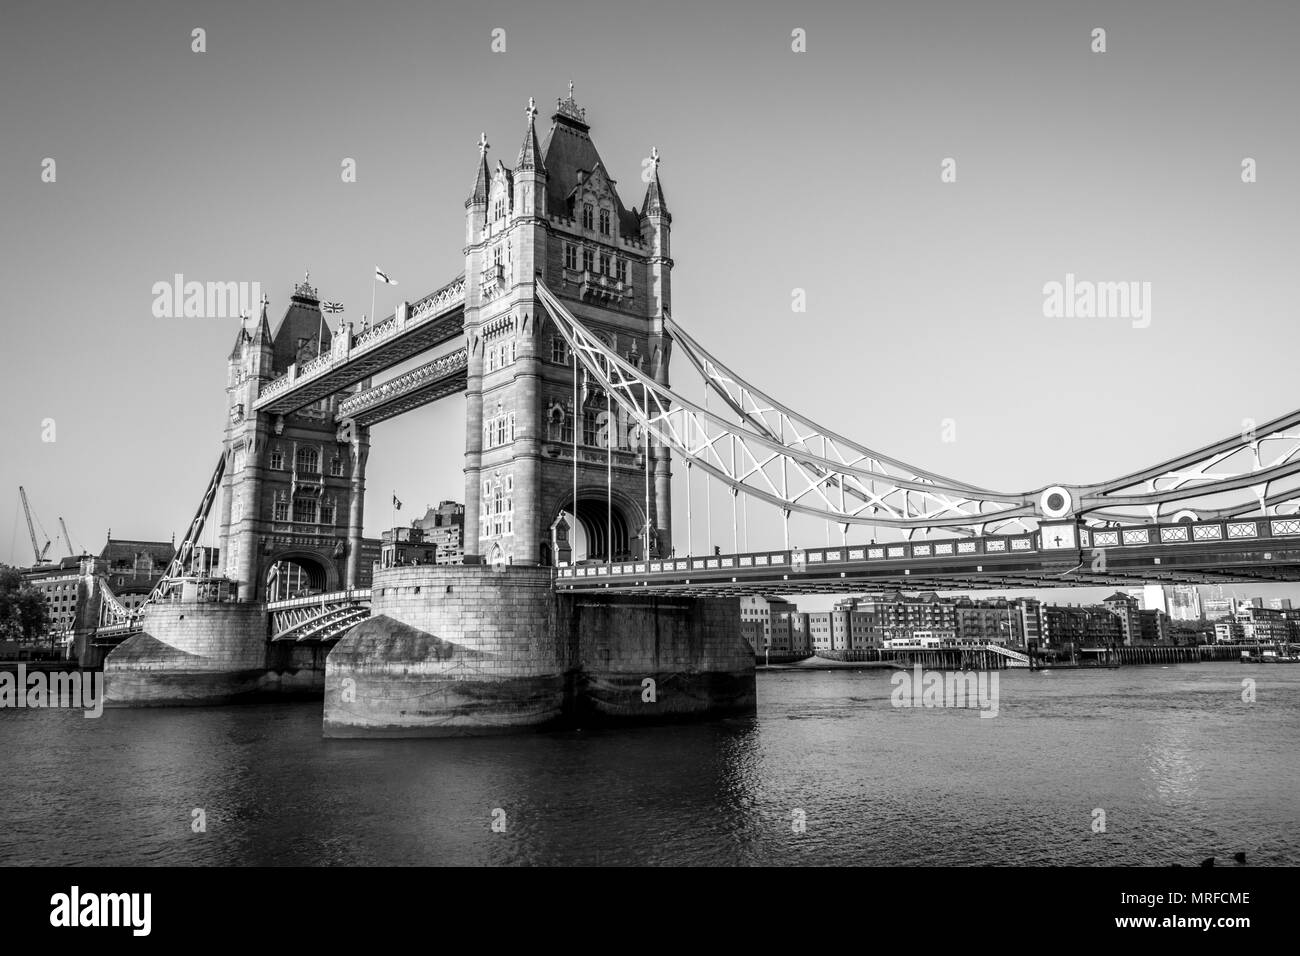 This is an black and white photograph of Londons Icon Tower Bridge. - Stock Image